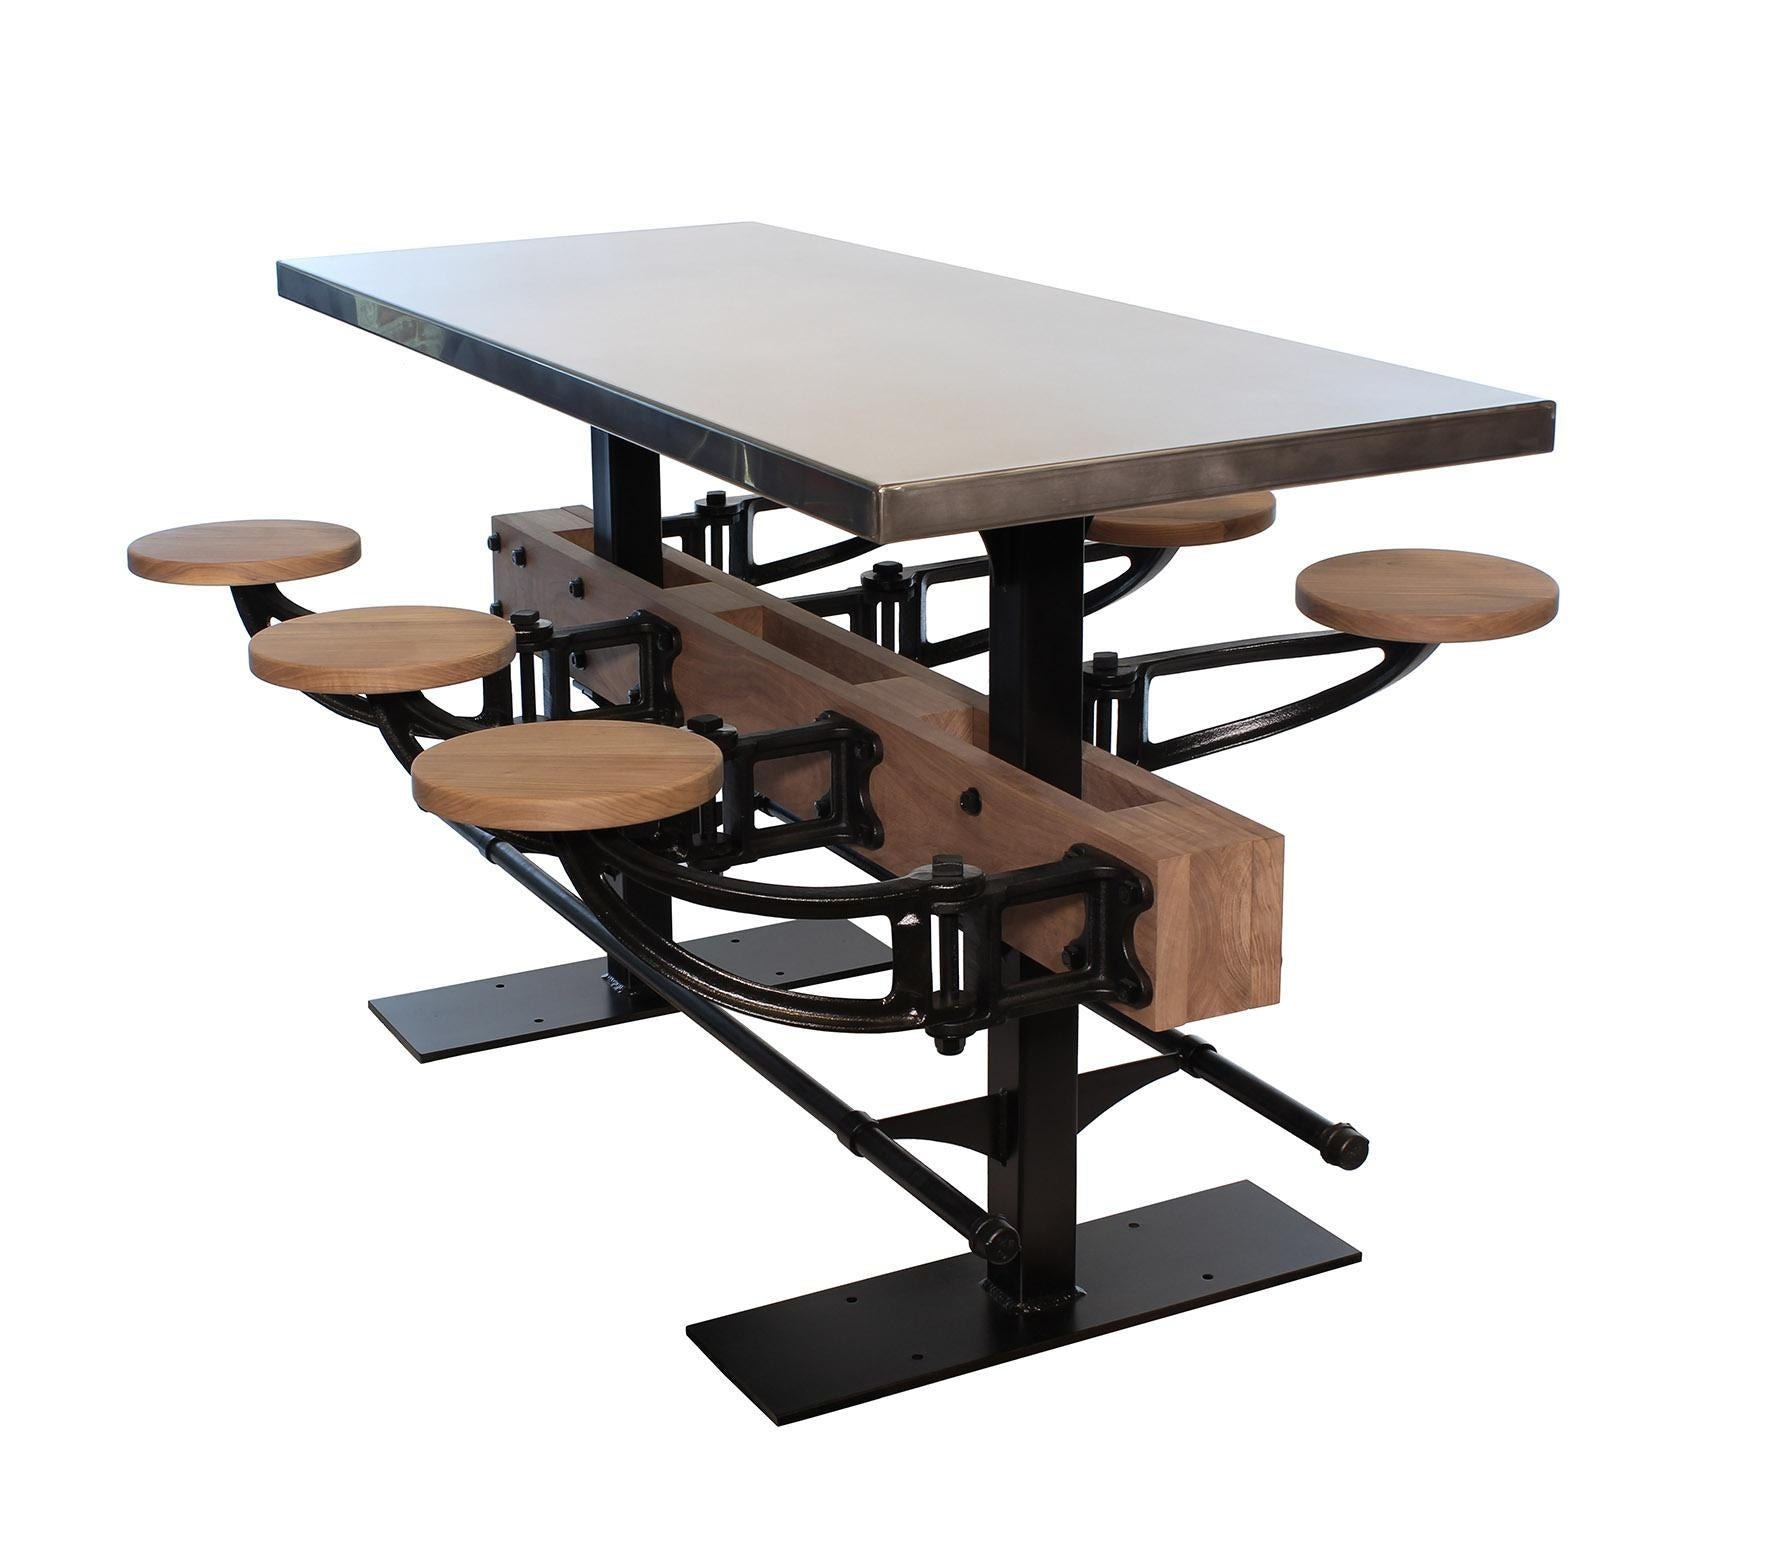 Charmant Stainless Steel Bar Height Dining Table With Attached Seats